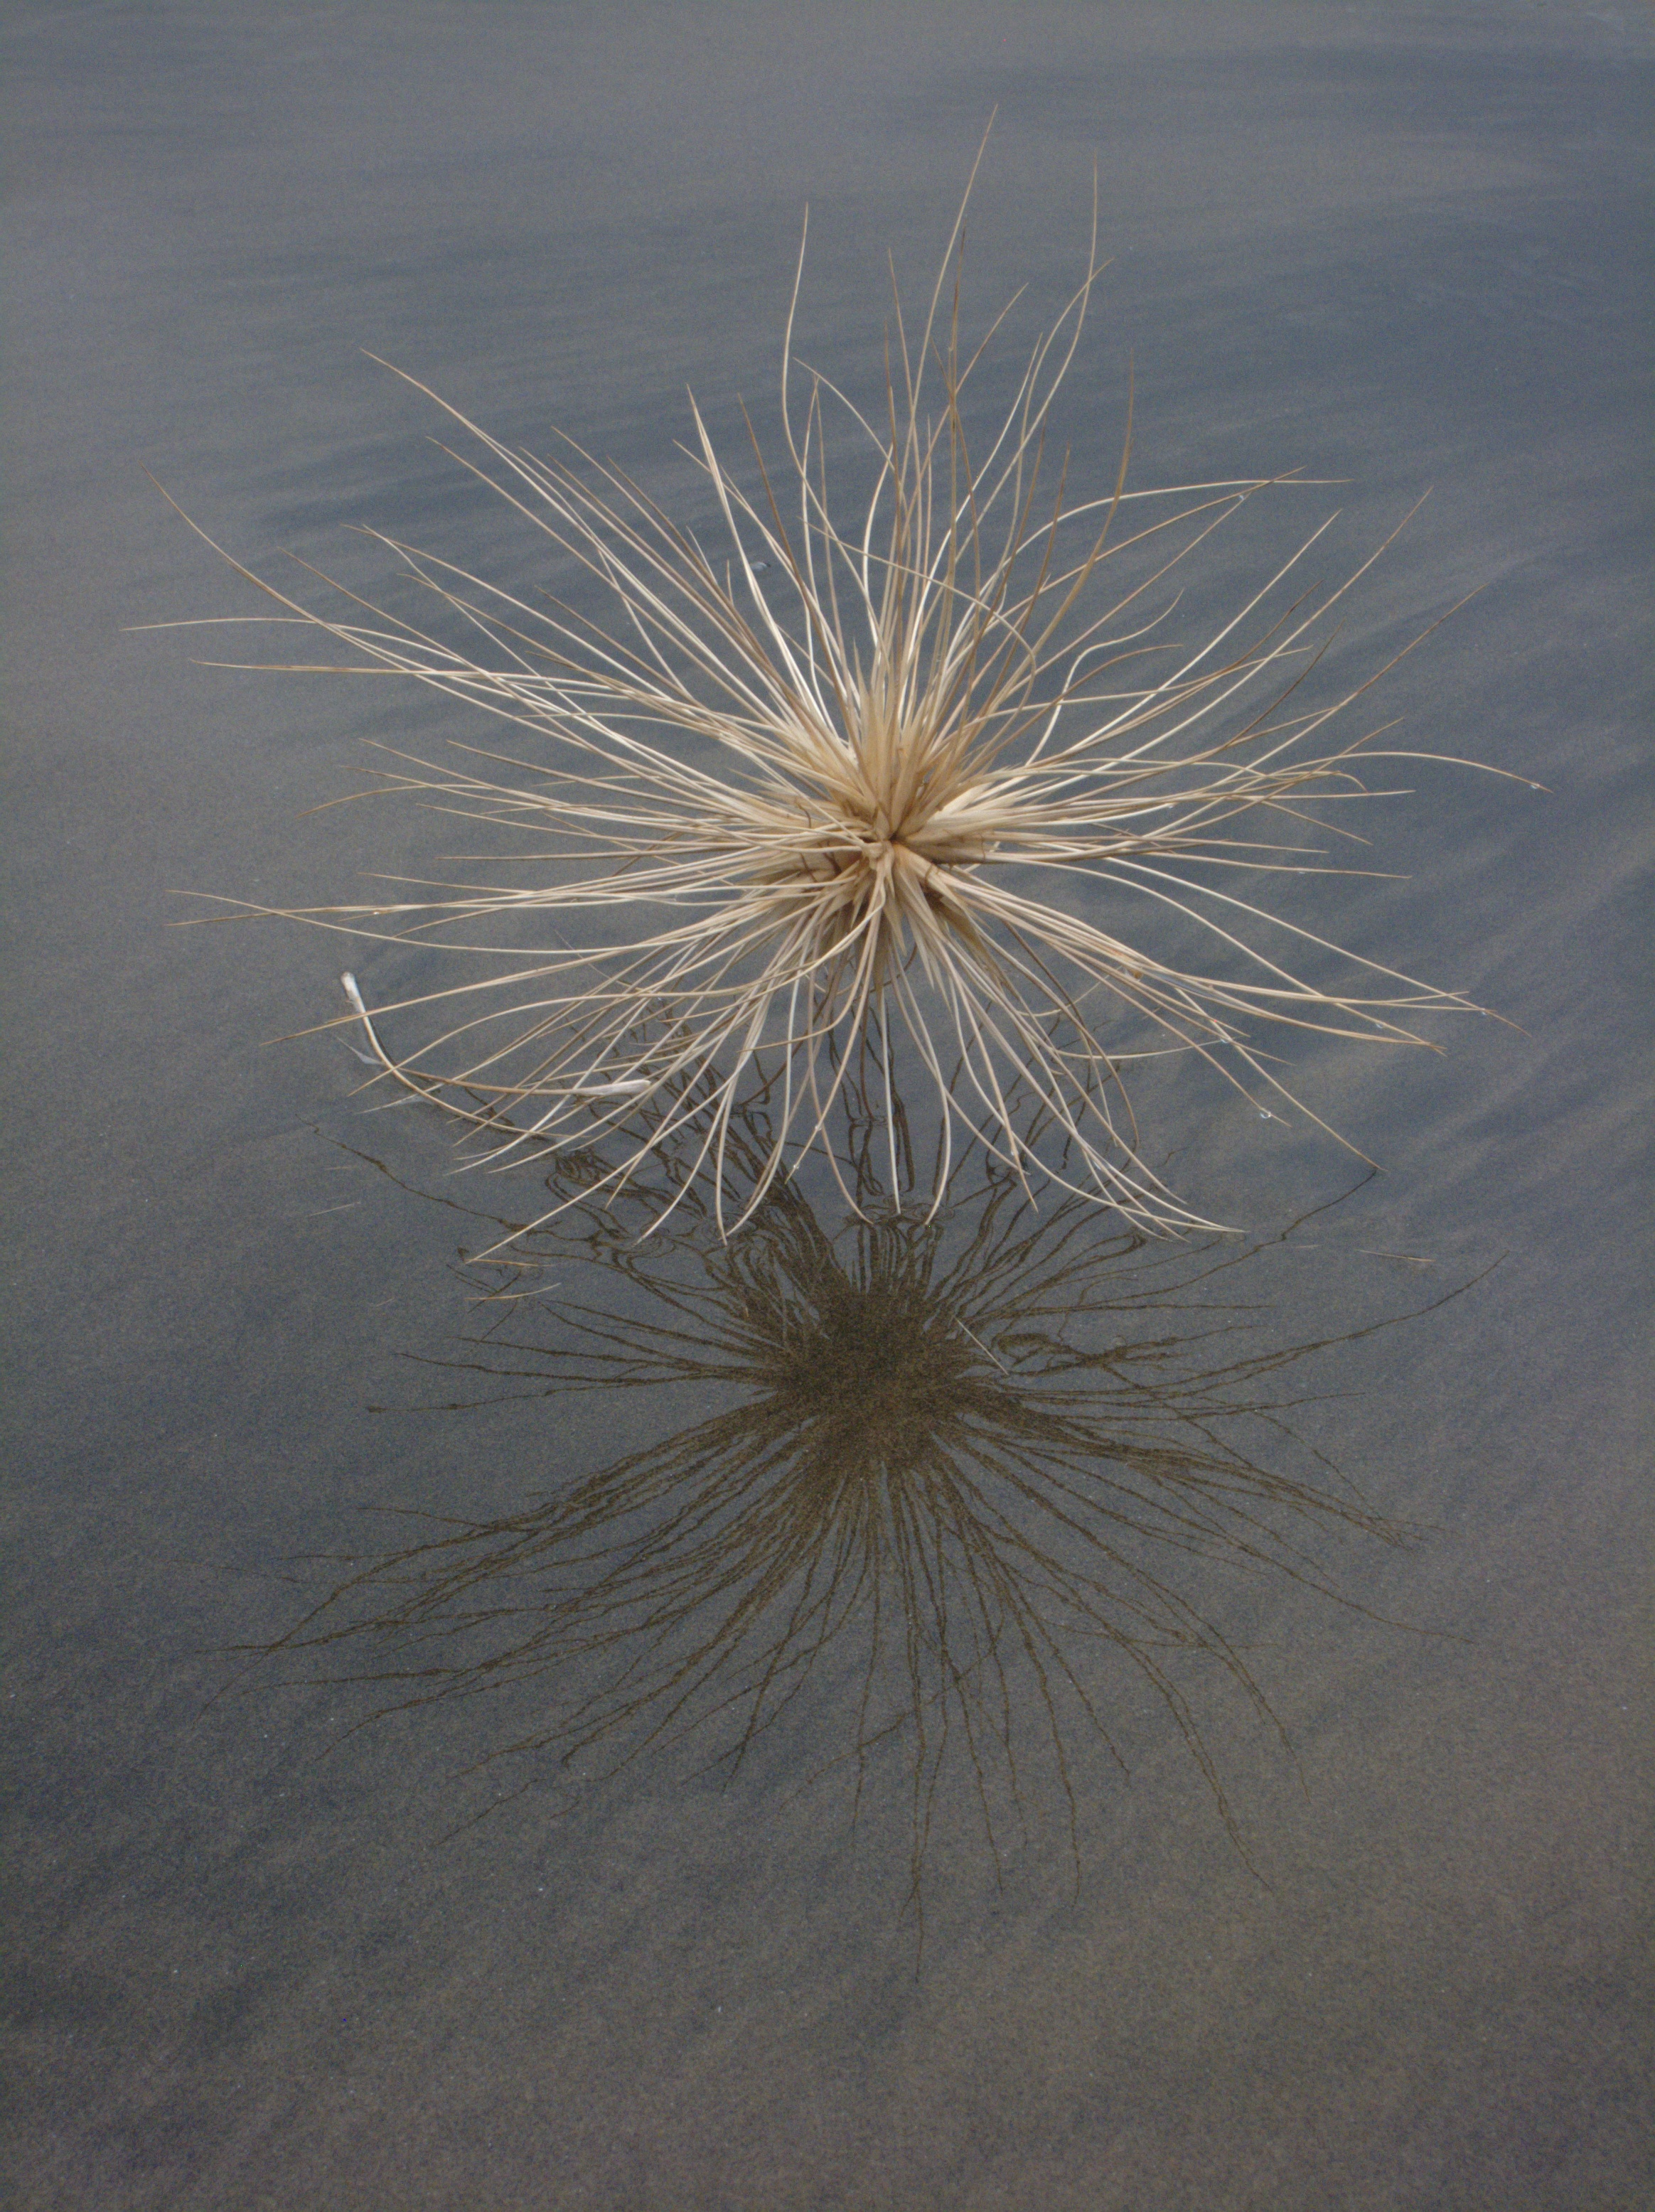 https://i1.wp.com/upload.wikimedia.org/wikipedia/commons/6/6a/Spinifex_sericeus_seed_head.jpg